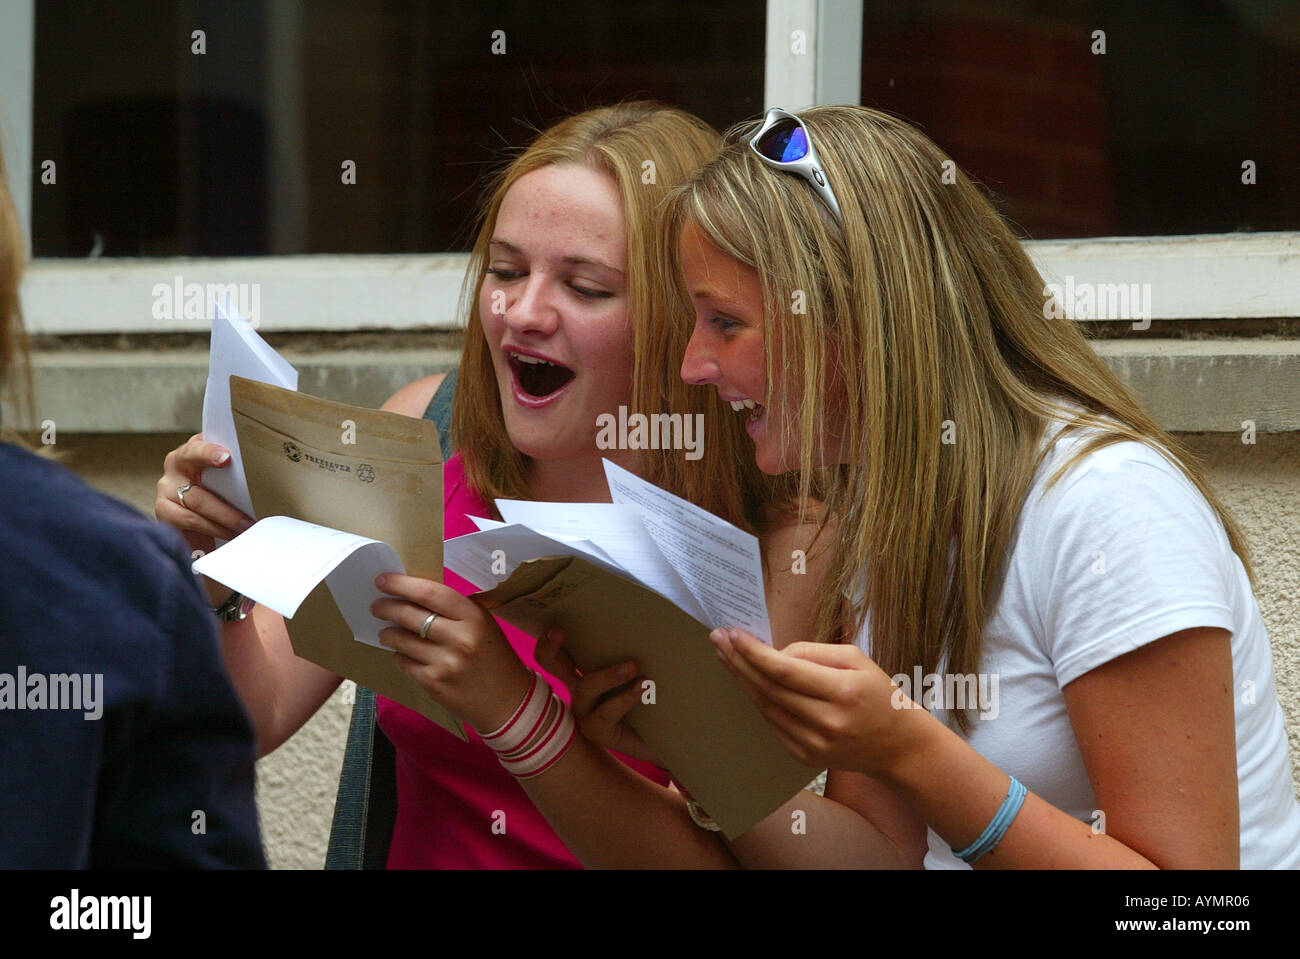 Students celebrate their GCSE exam results at Maynard's School in Exeter Devon UK *EDITORIAL USE ONLY* - Stock Image